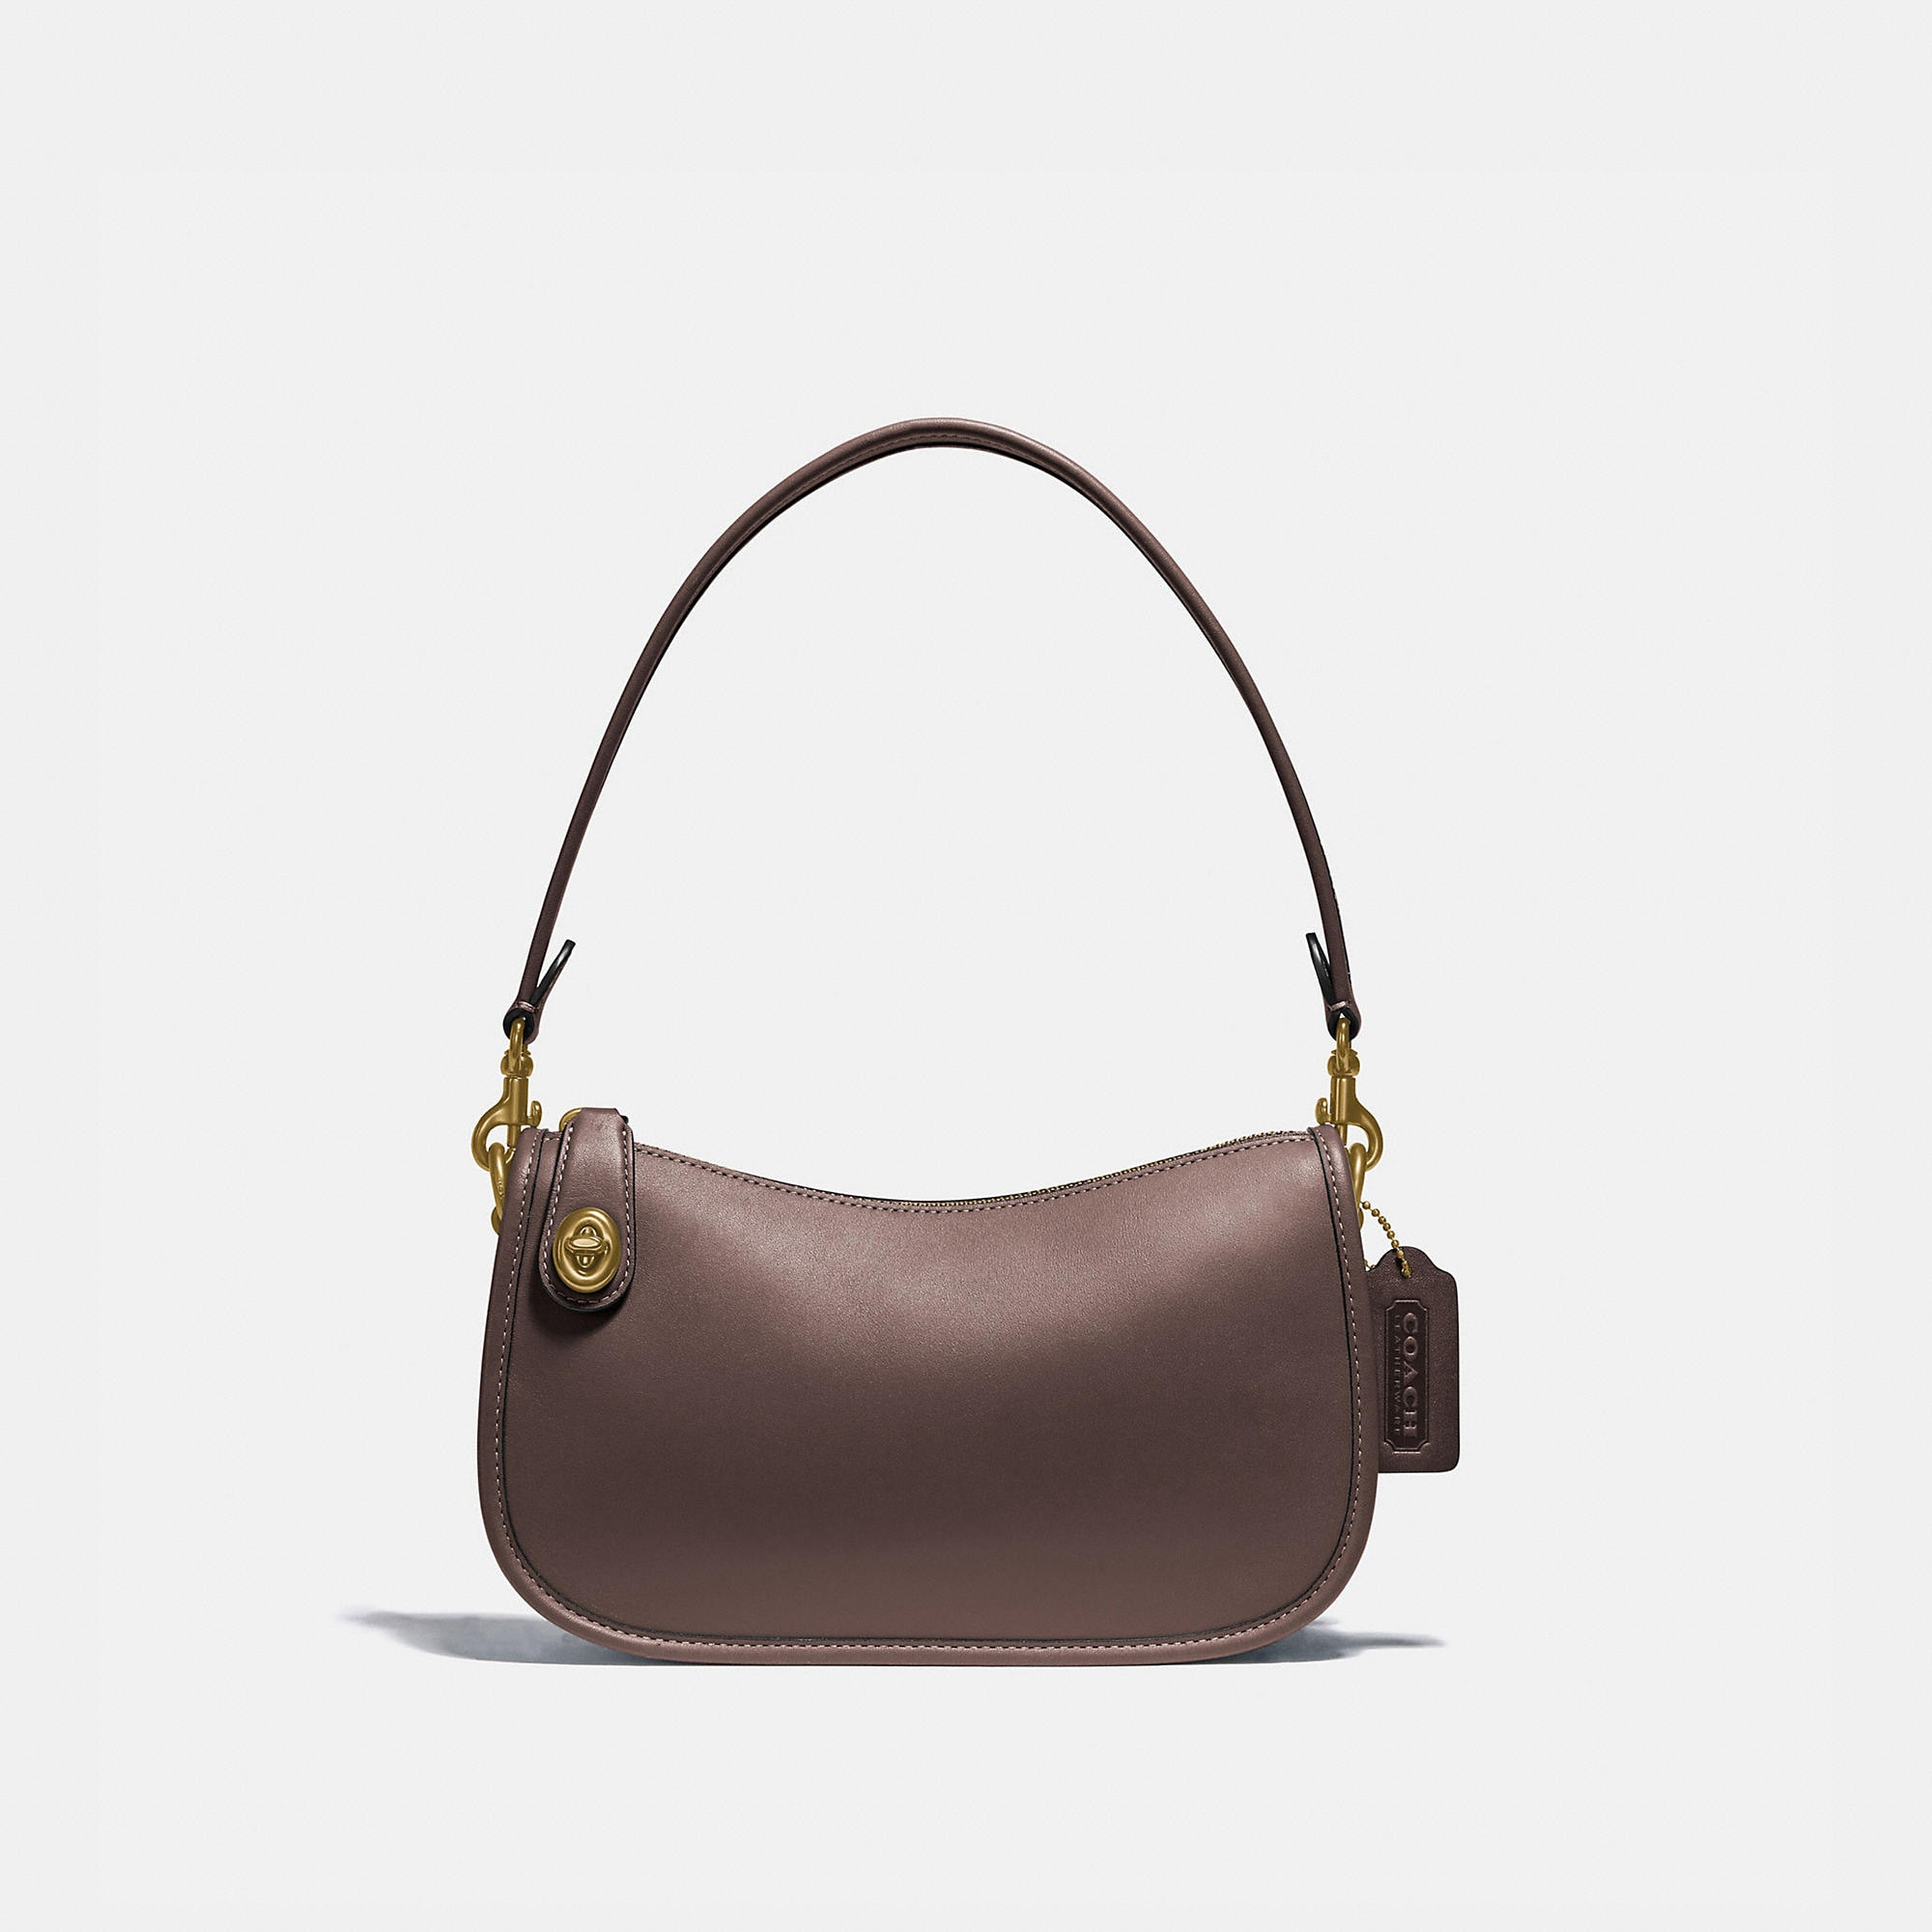 Coach COACH SWINGER BAG - WOMEN'S